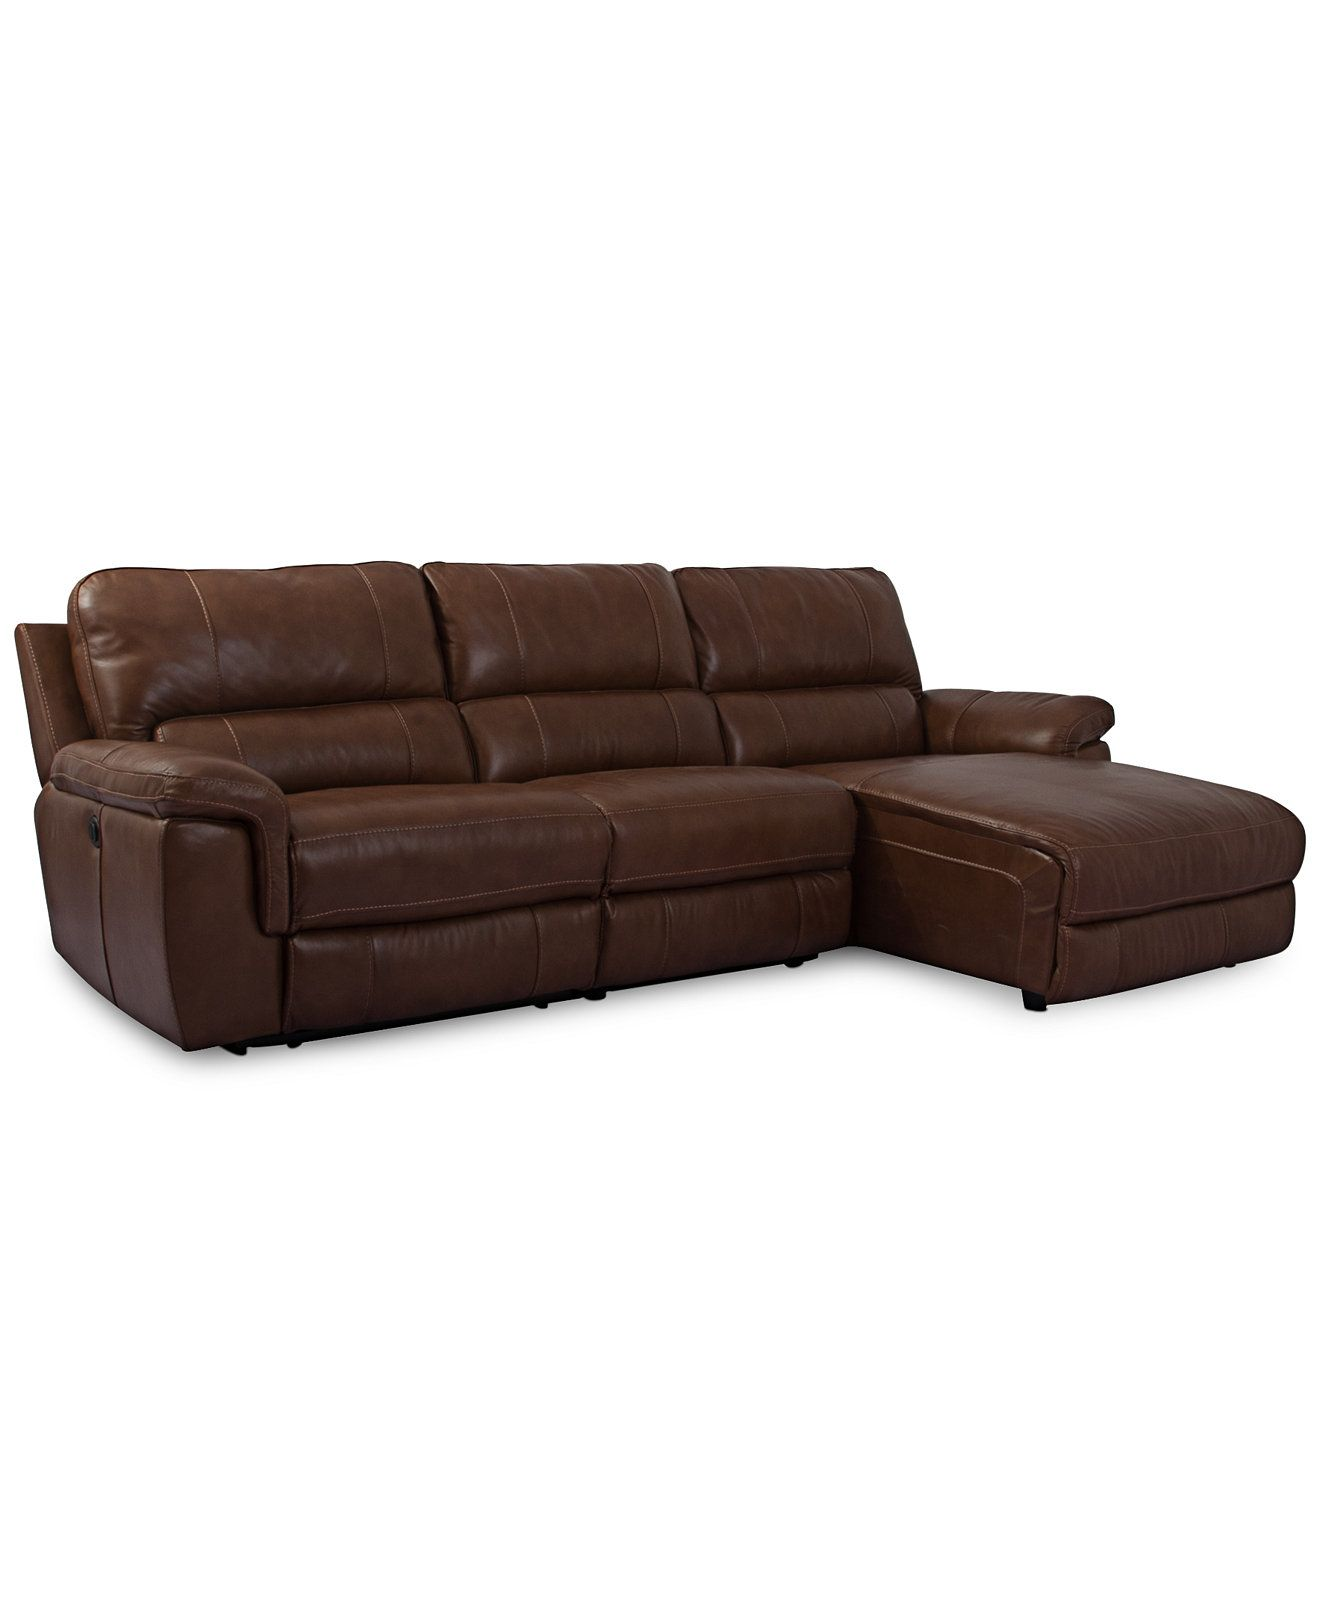 Brandie Leather 3-Piece Chaise Sectional Sofa with 1 Power Recliner ...